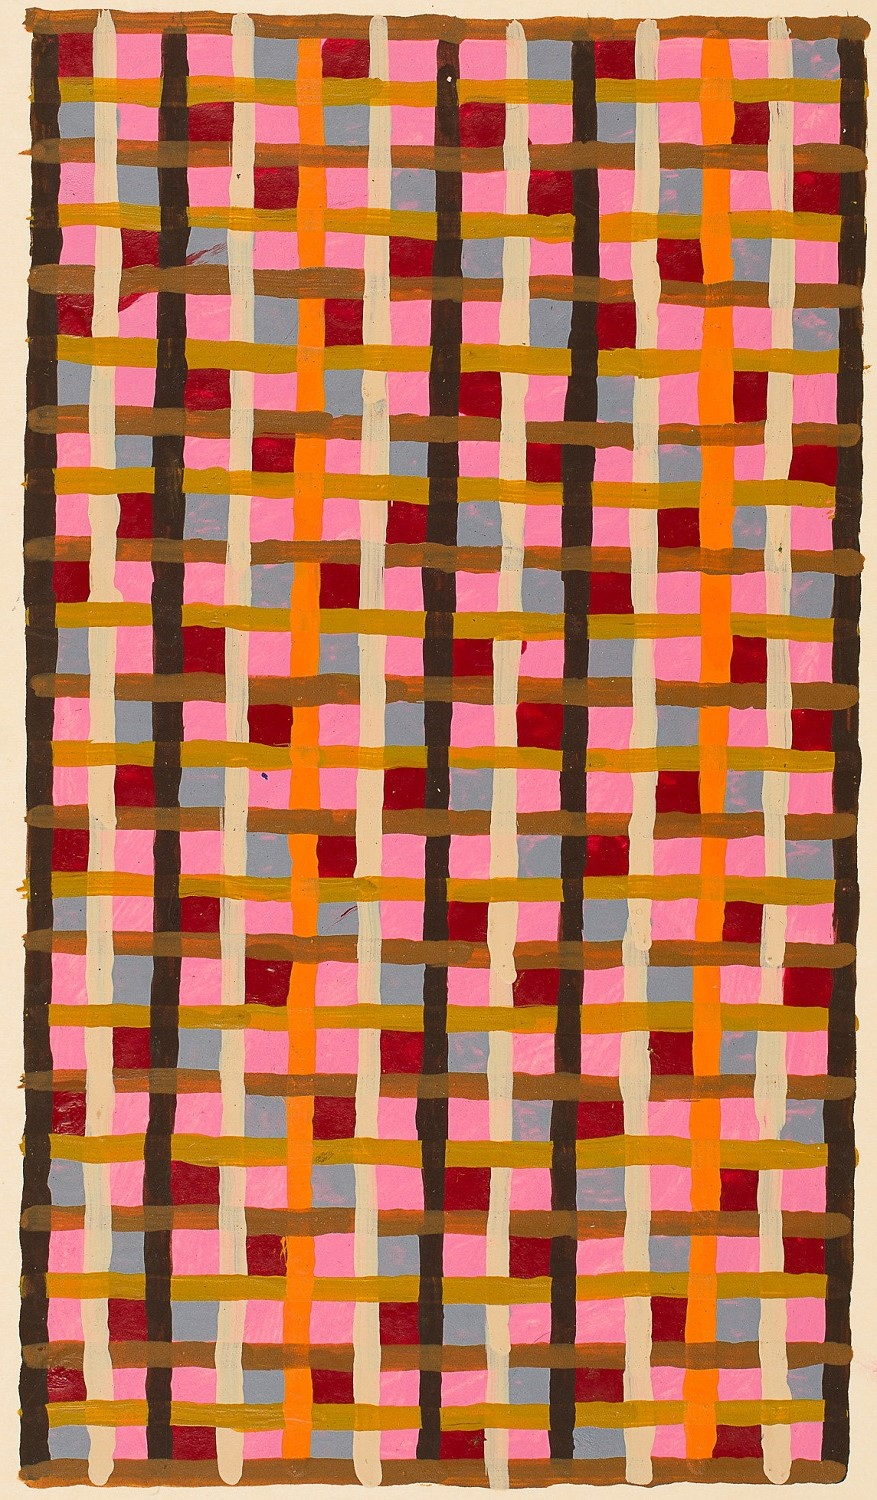 Peter Young,  Linear Weave Study,  1979, Acrylic on Manila folder, 4 5/8 x 9 1/4 inches (11.7 x 23.5 cm)